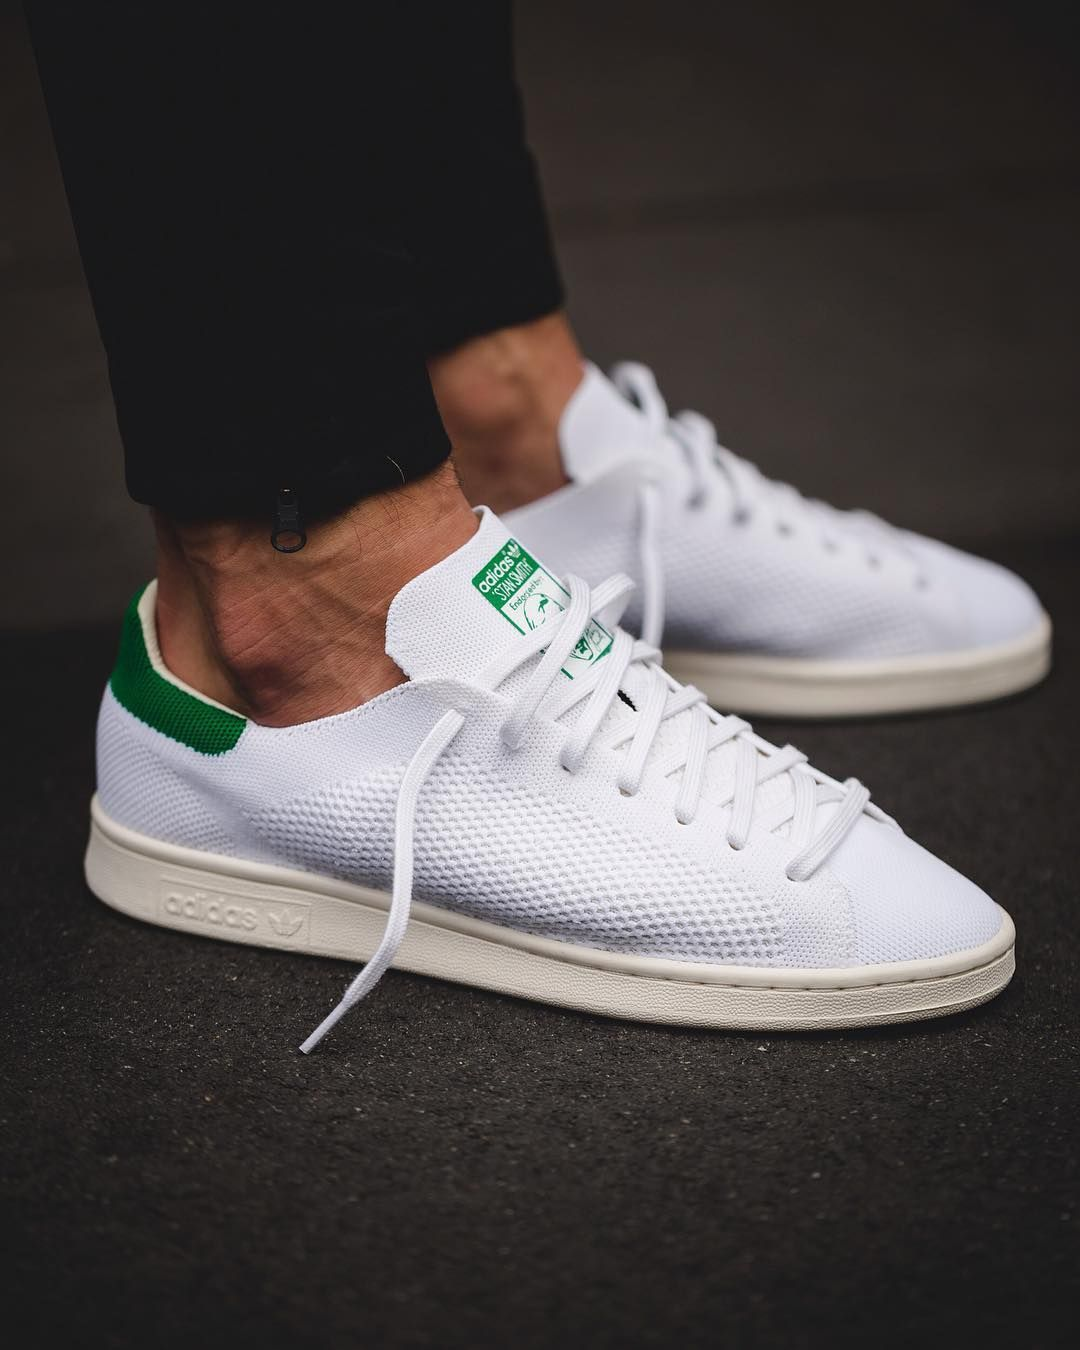 13+ Outstanding Urban Wear Summer Shoes Ideas | Adidas shoes